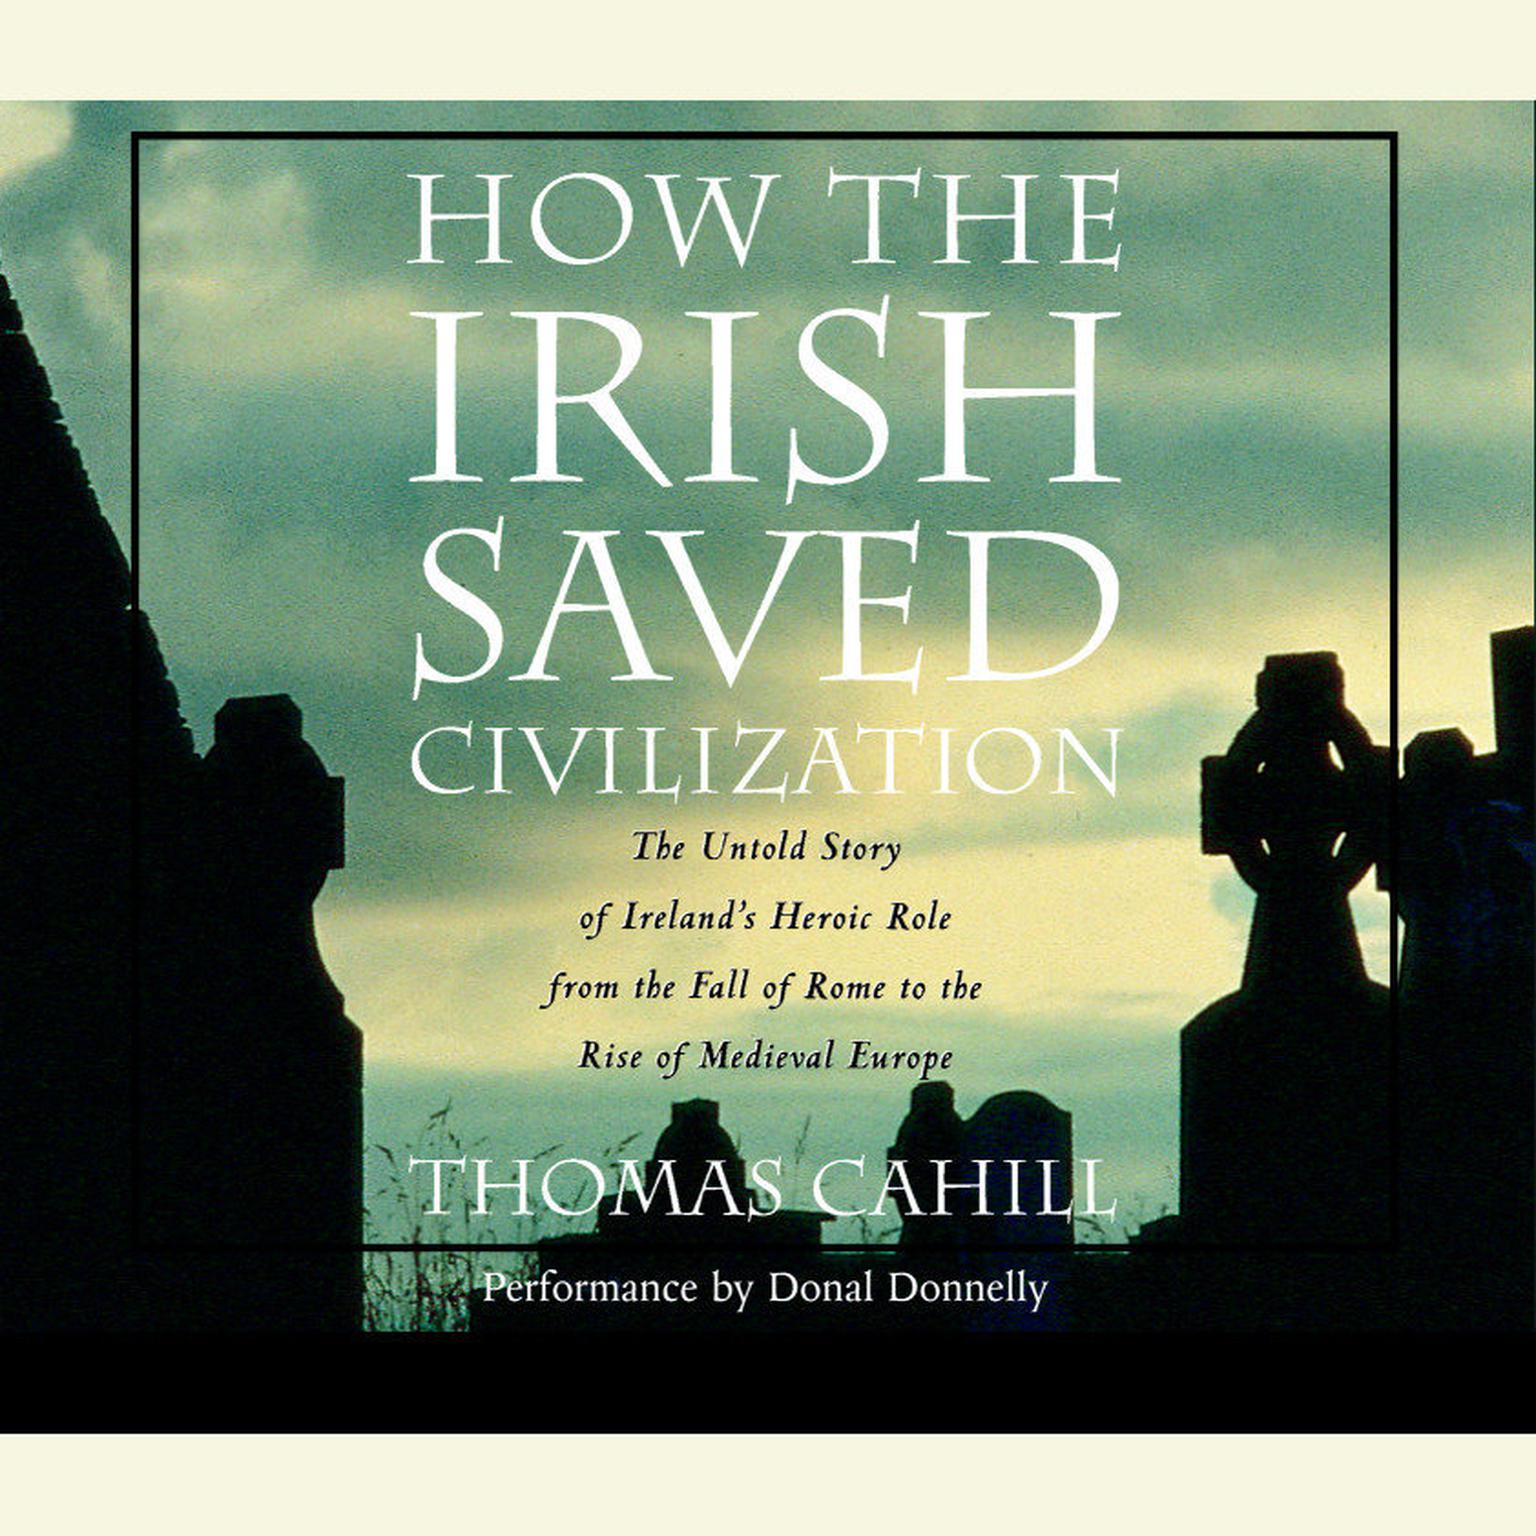 Image result for How the Irish Saved Civilization by Thomas Cahill